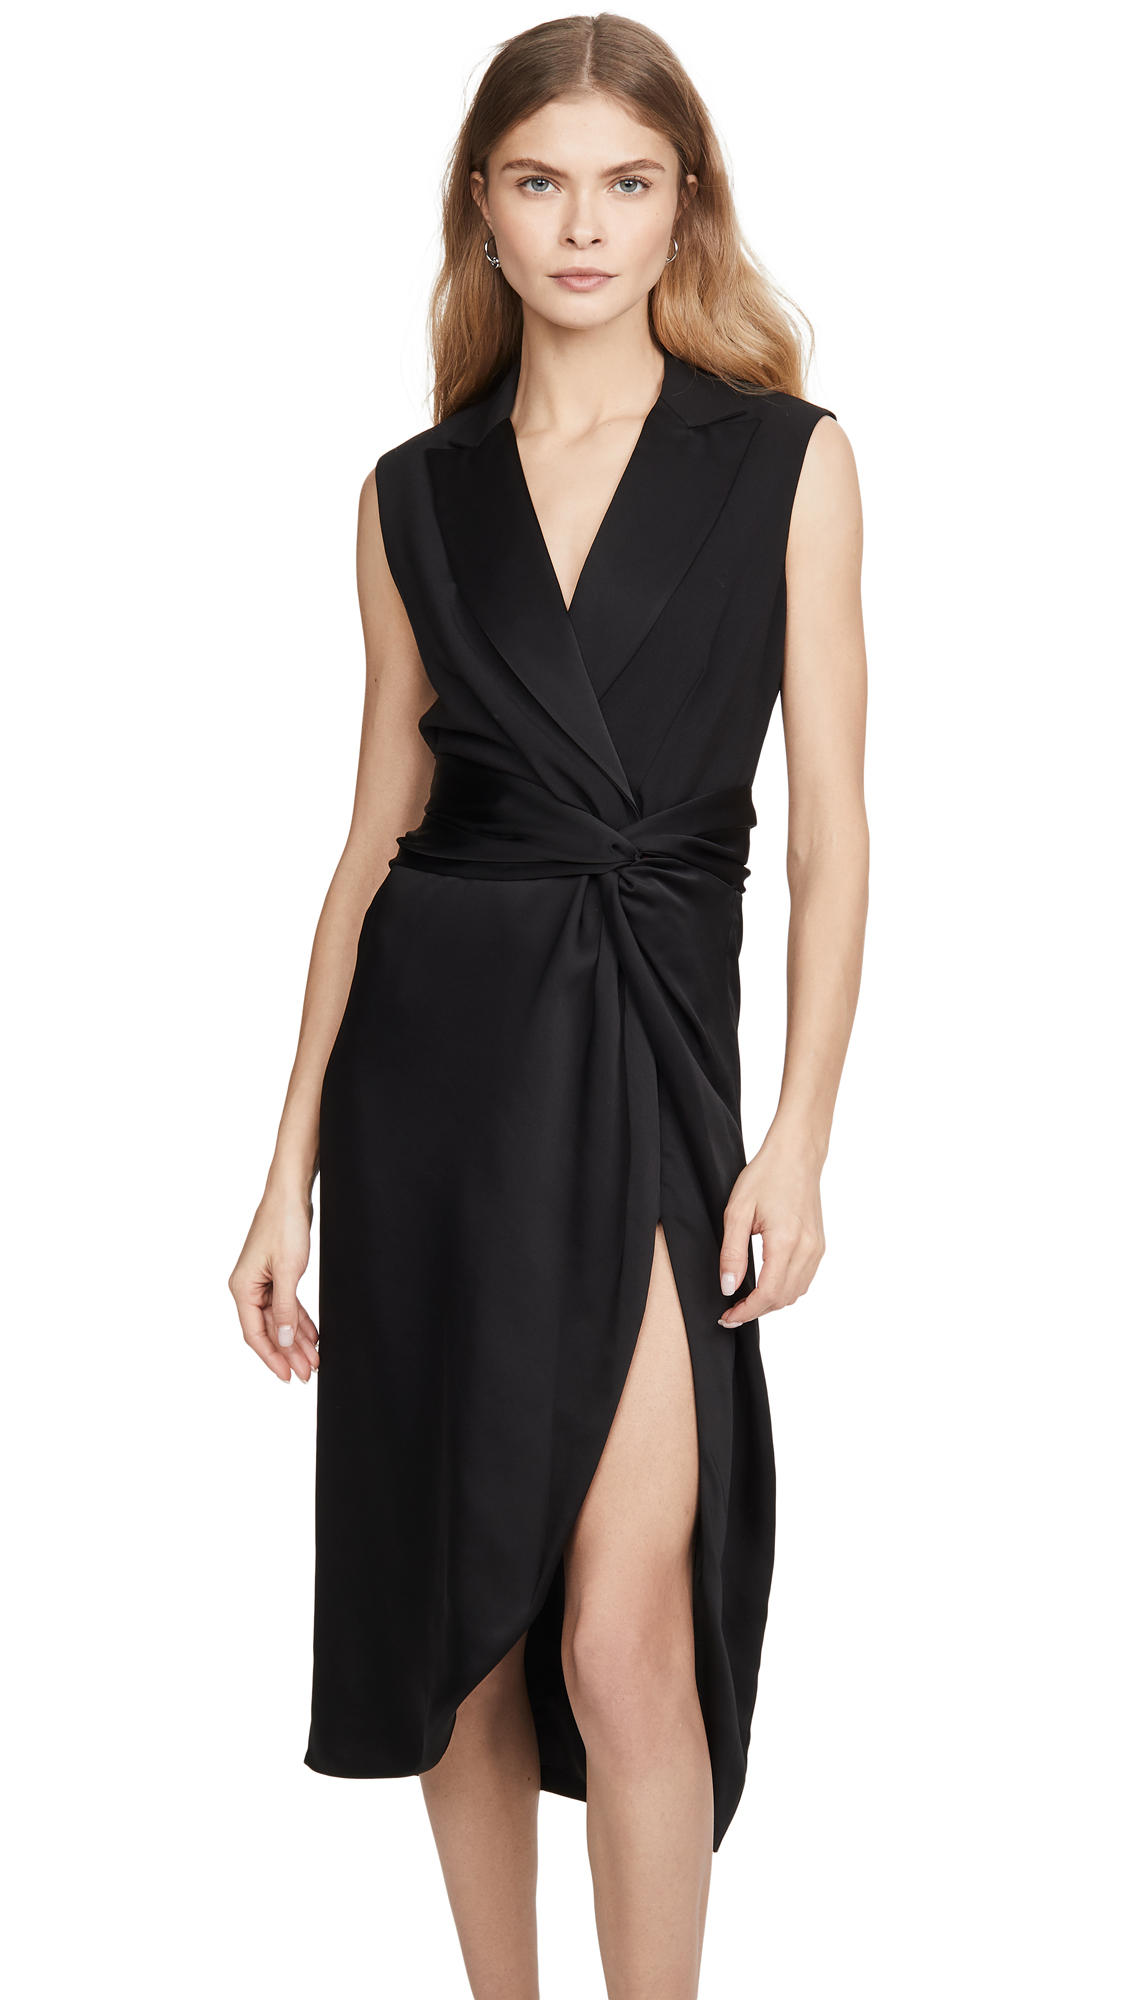 Jonathan Simkhai Luxe Satin Combo Twist Dress – 30% Off Sale